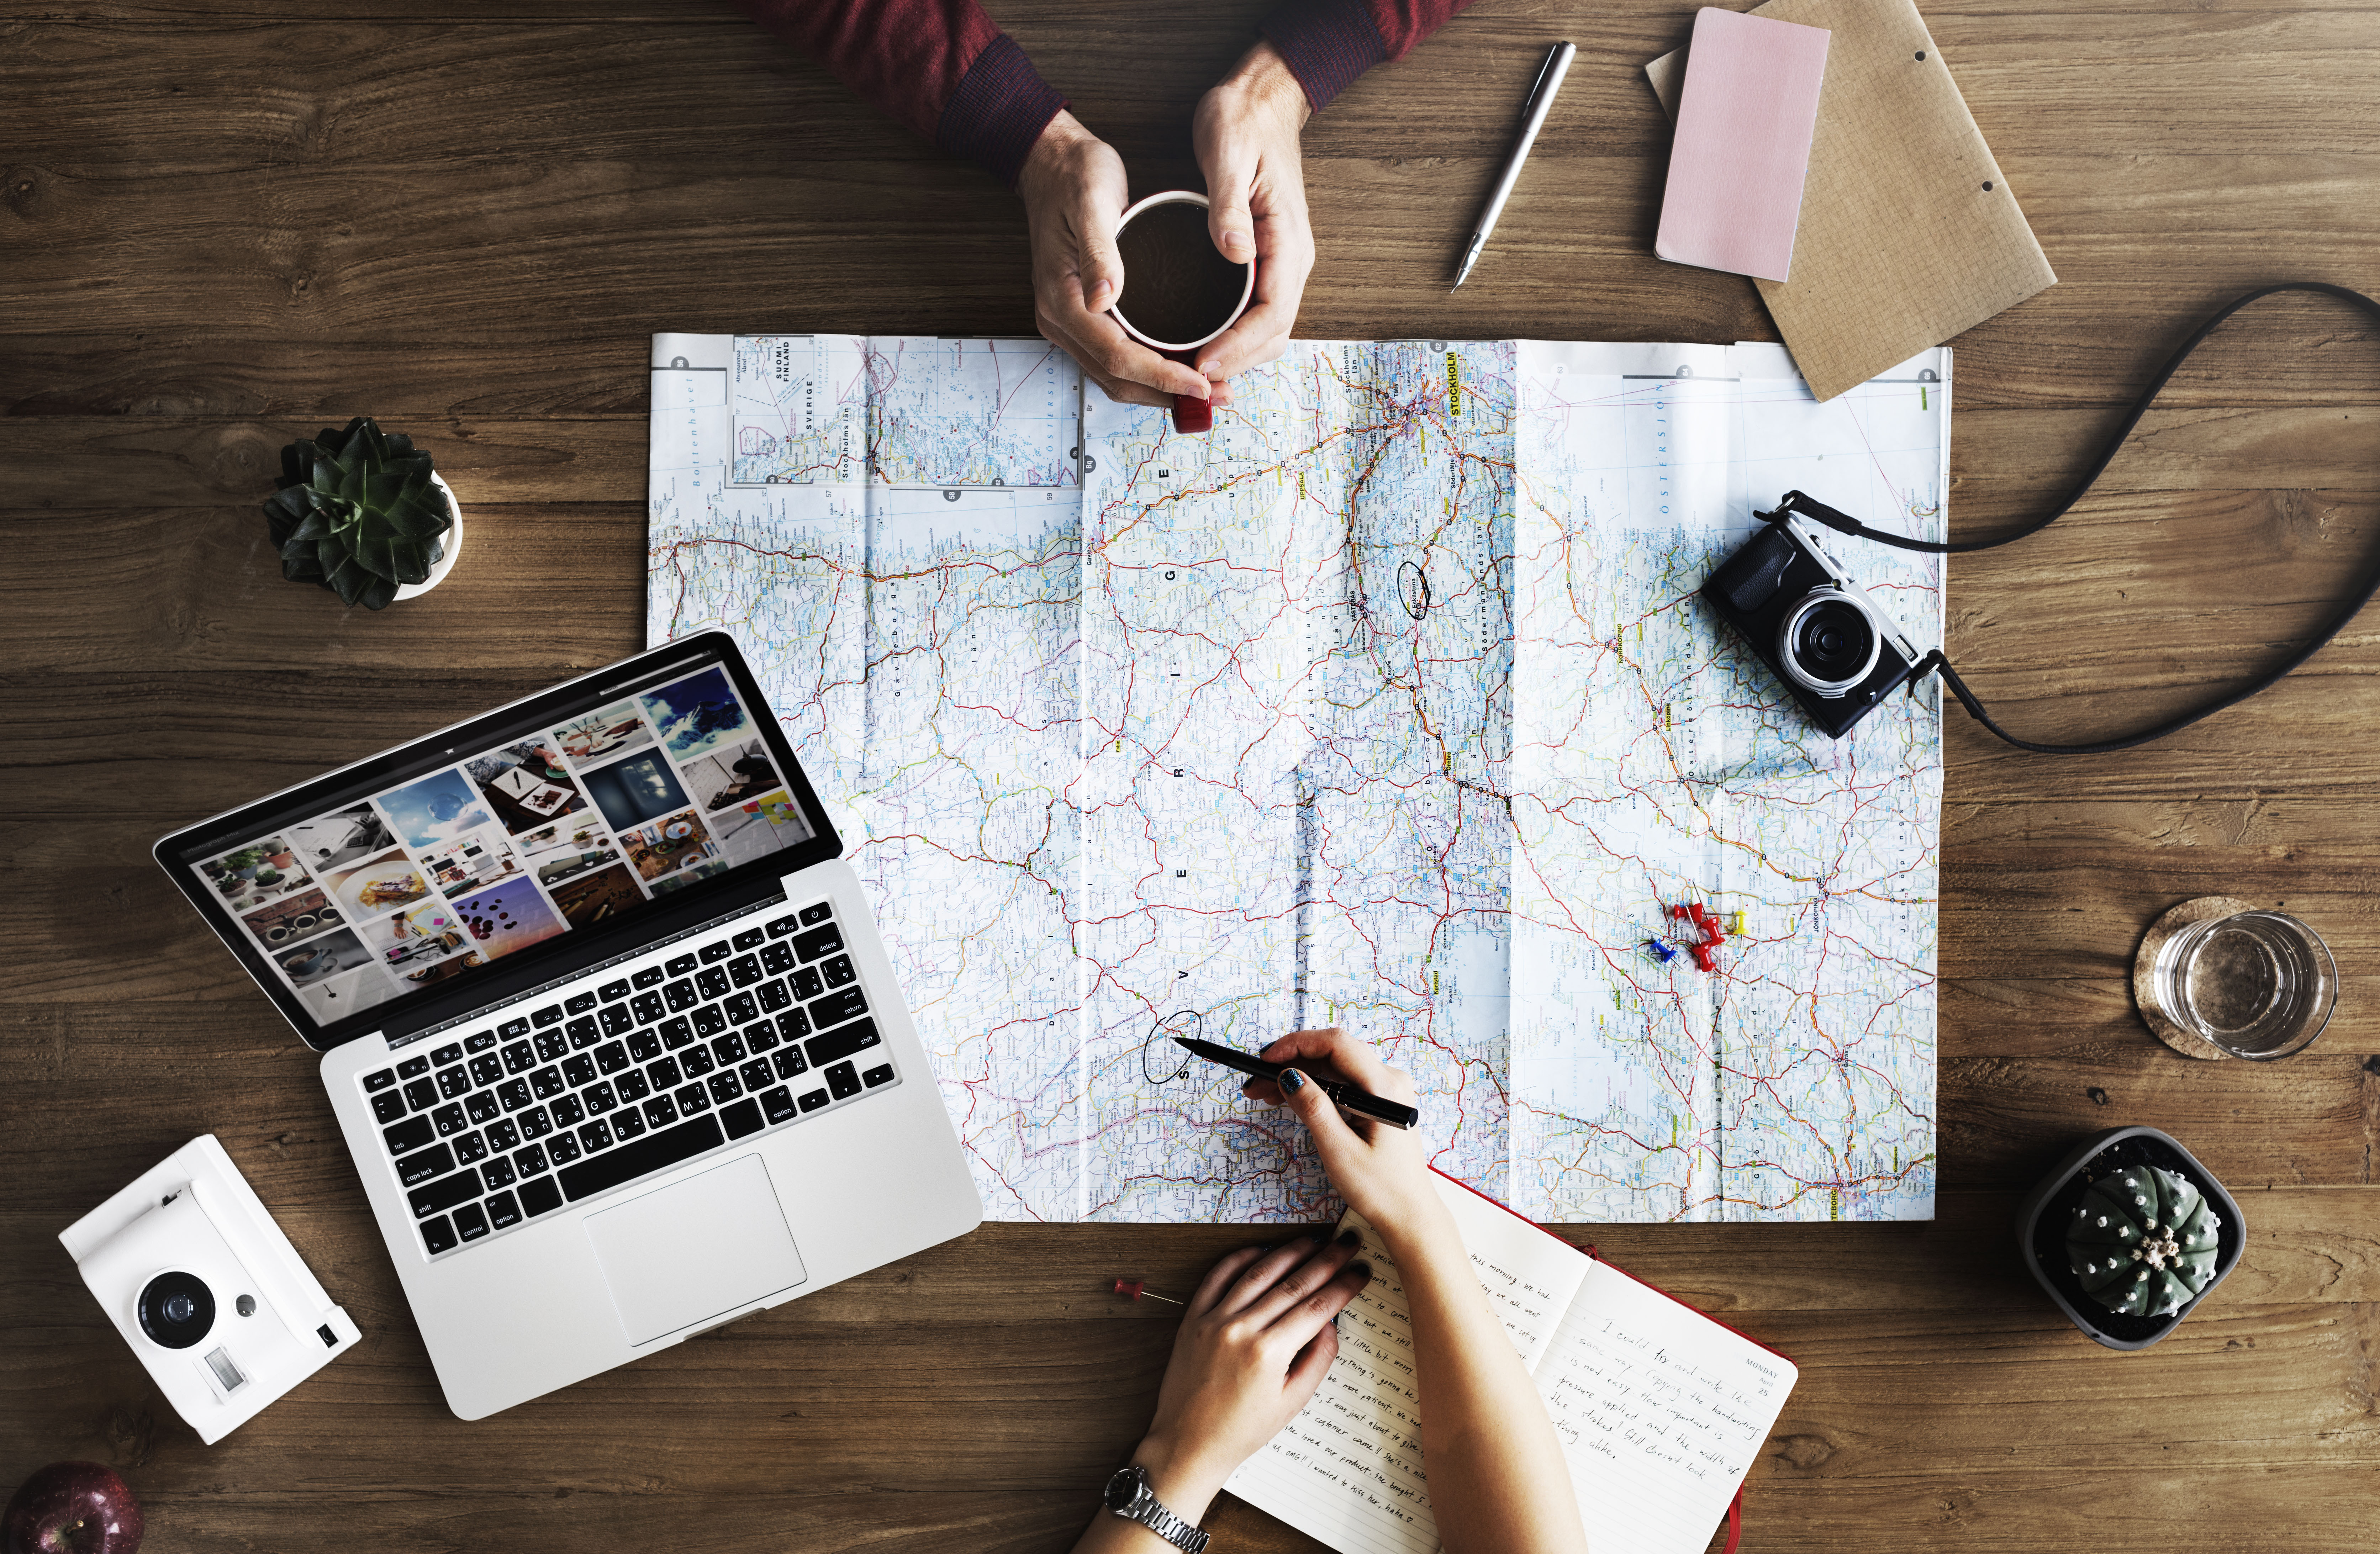 3 Ways to Develop Your Career Skills Through Travel in College thumbnail image